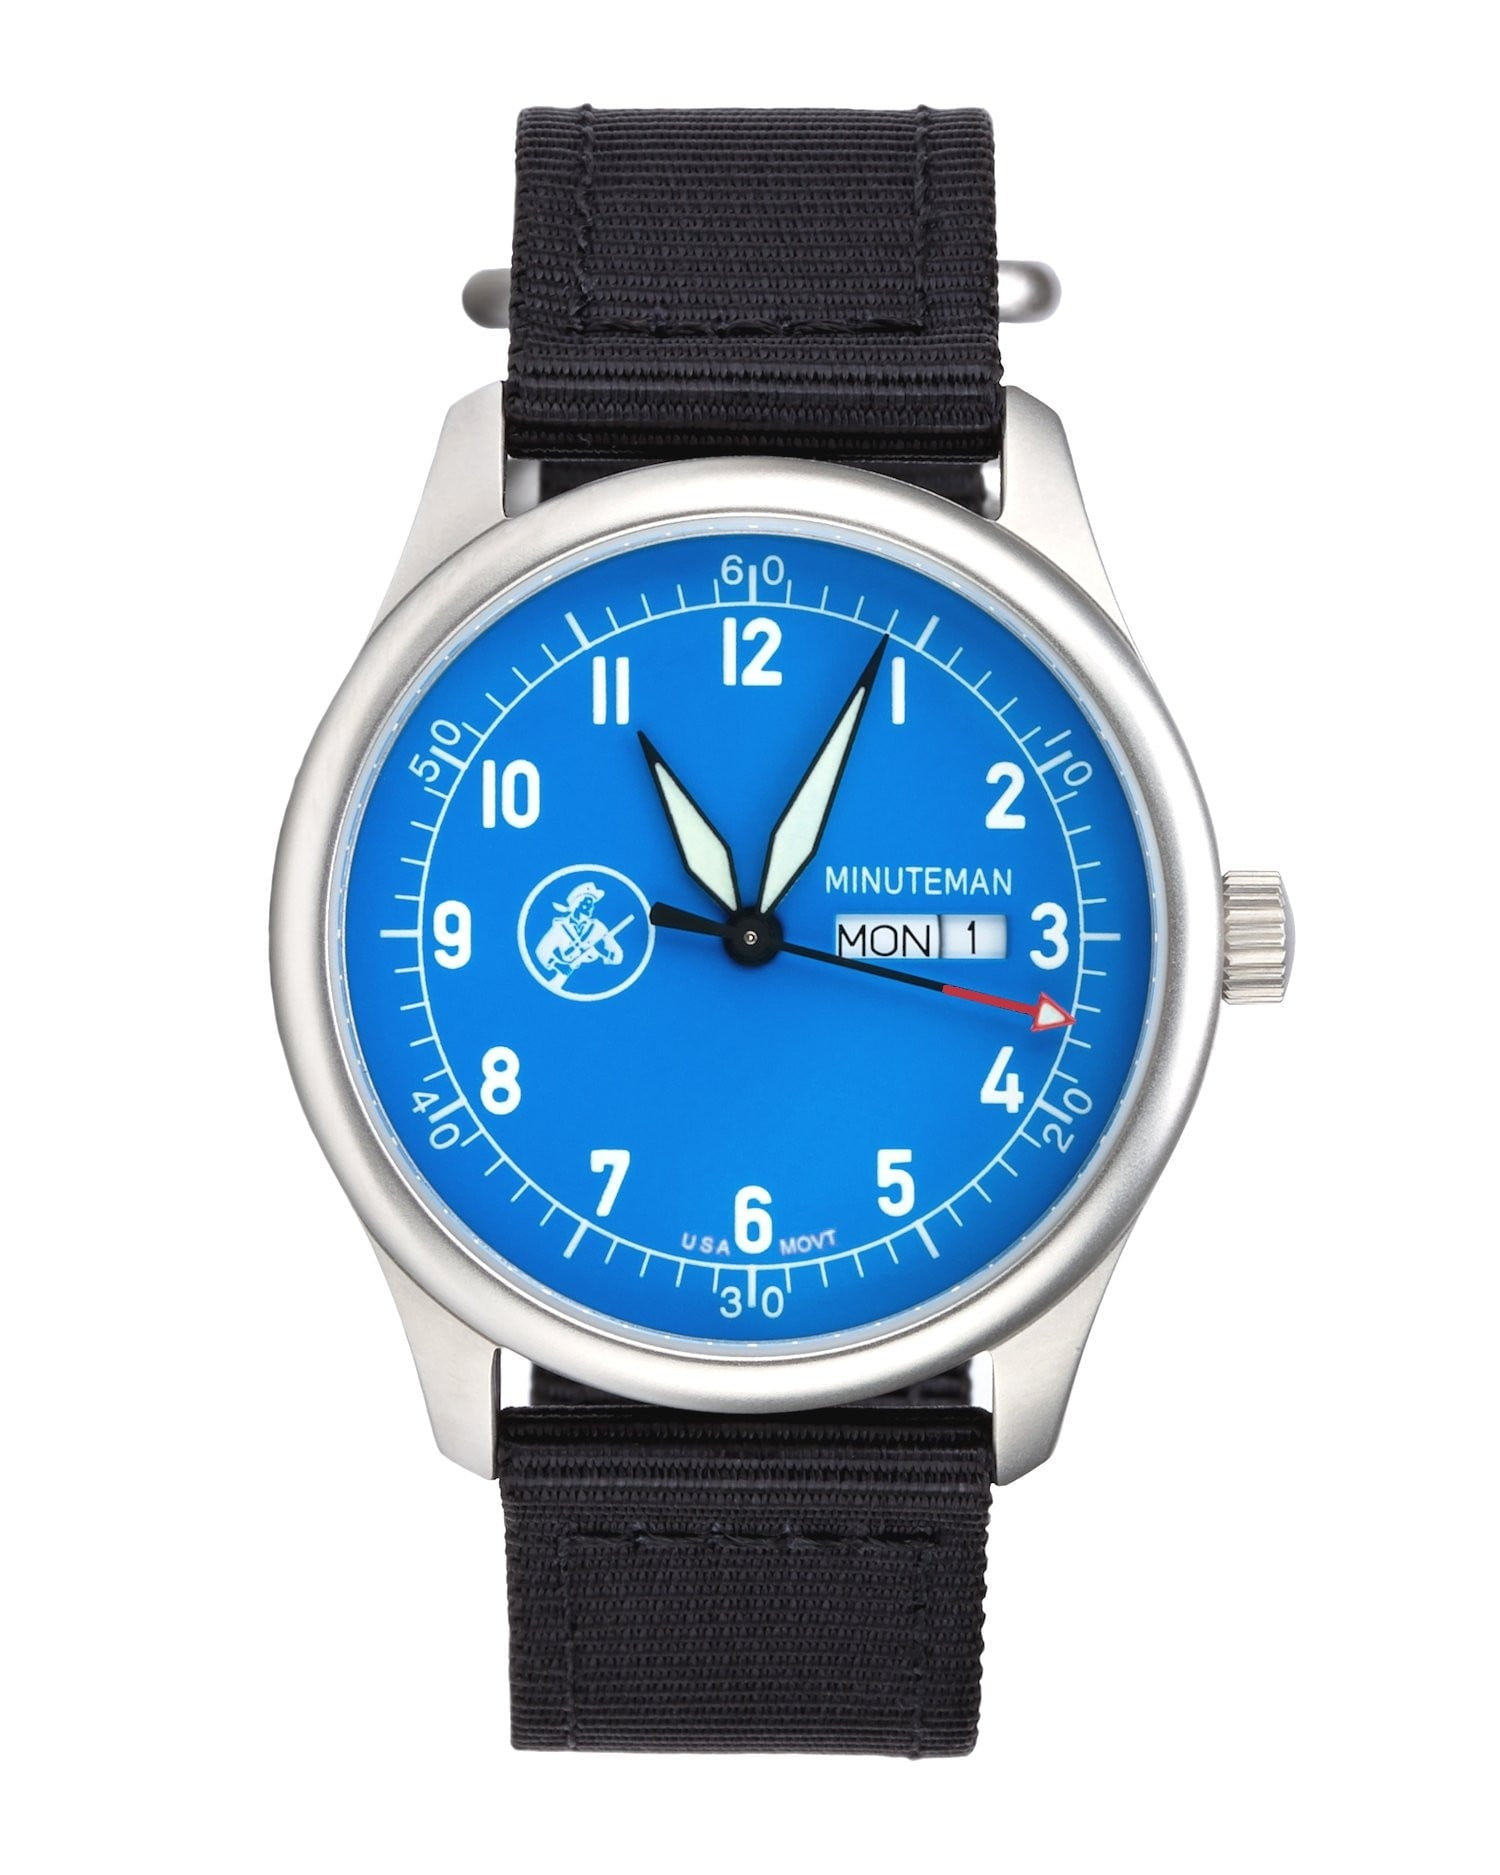 In Stock Minuteman  A11 Field Watch Powered by Ameriquartz USA Movt Black Nylon Strap Electric Blue Dial,minutemanwatches,Minuteman,Wrist Watch